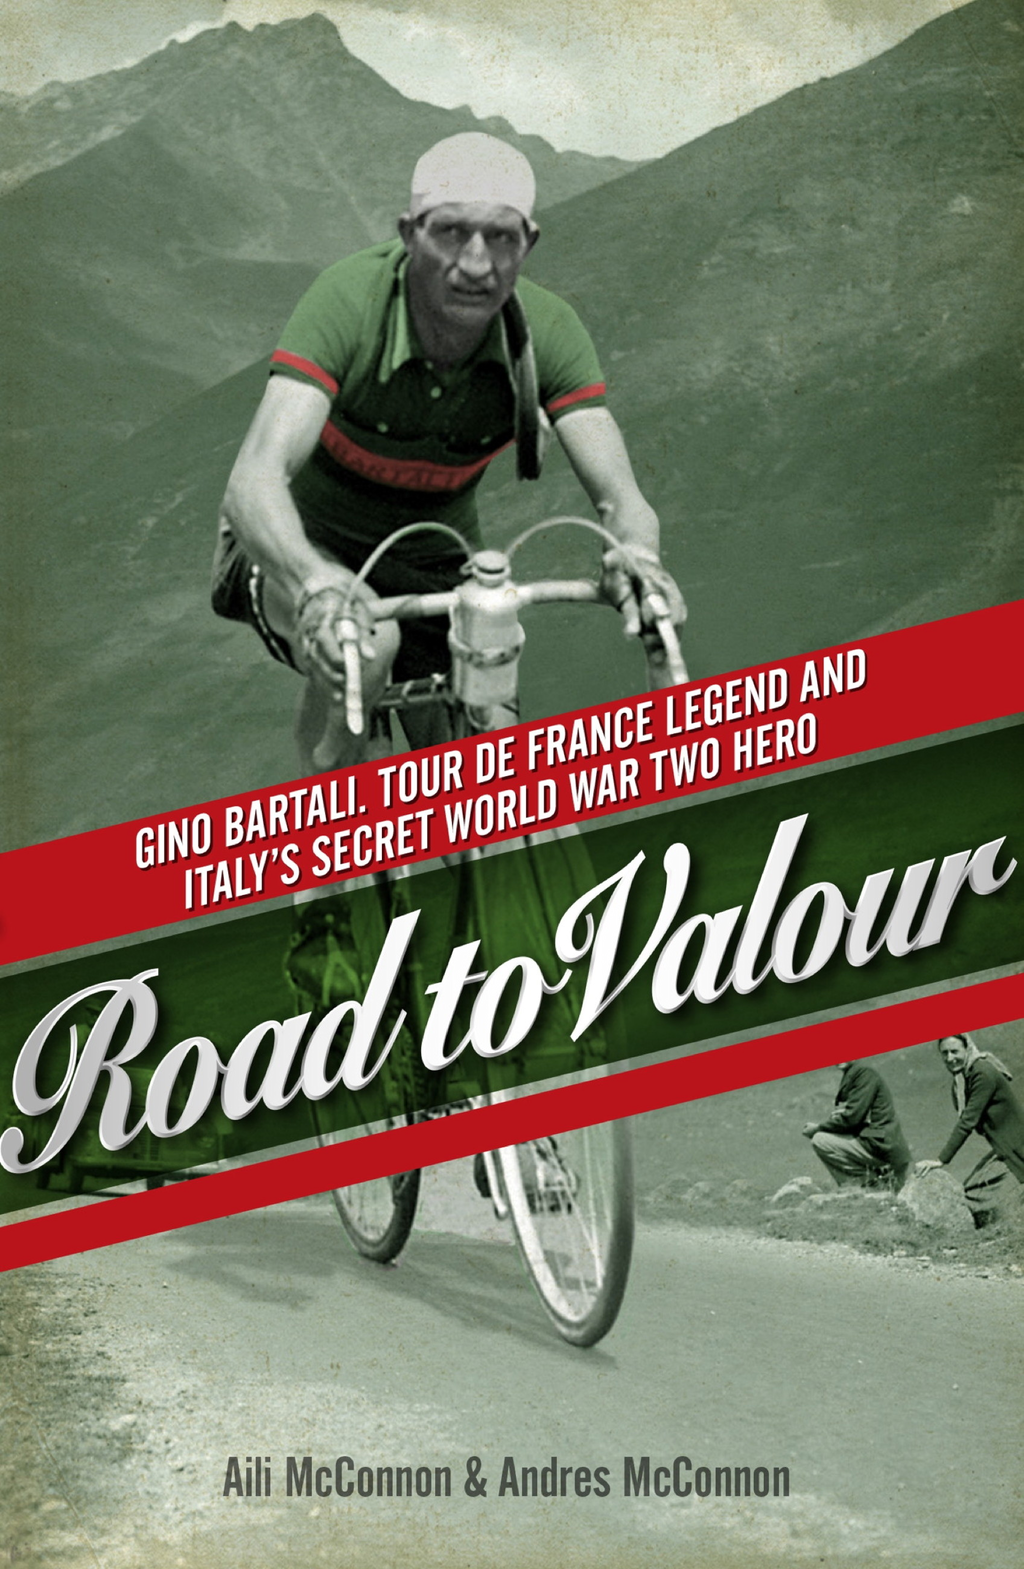 Road to Valour Gino Bartali: Tour de France Legend and Italy's Secret World War Two Hero